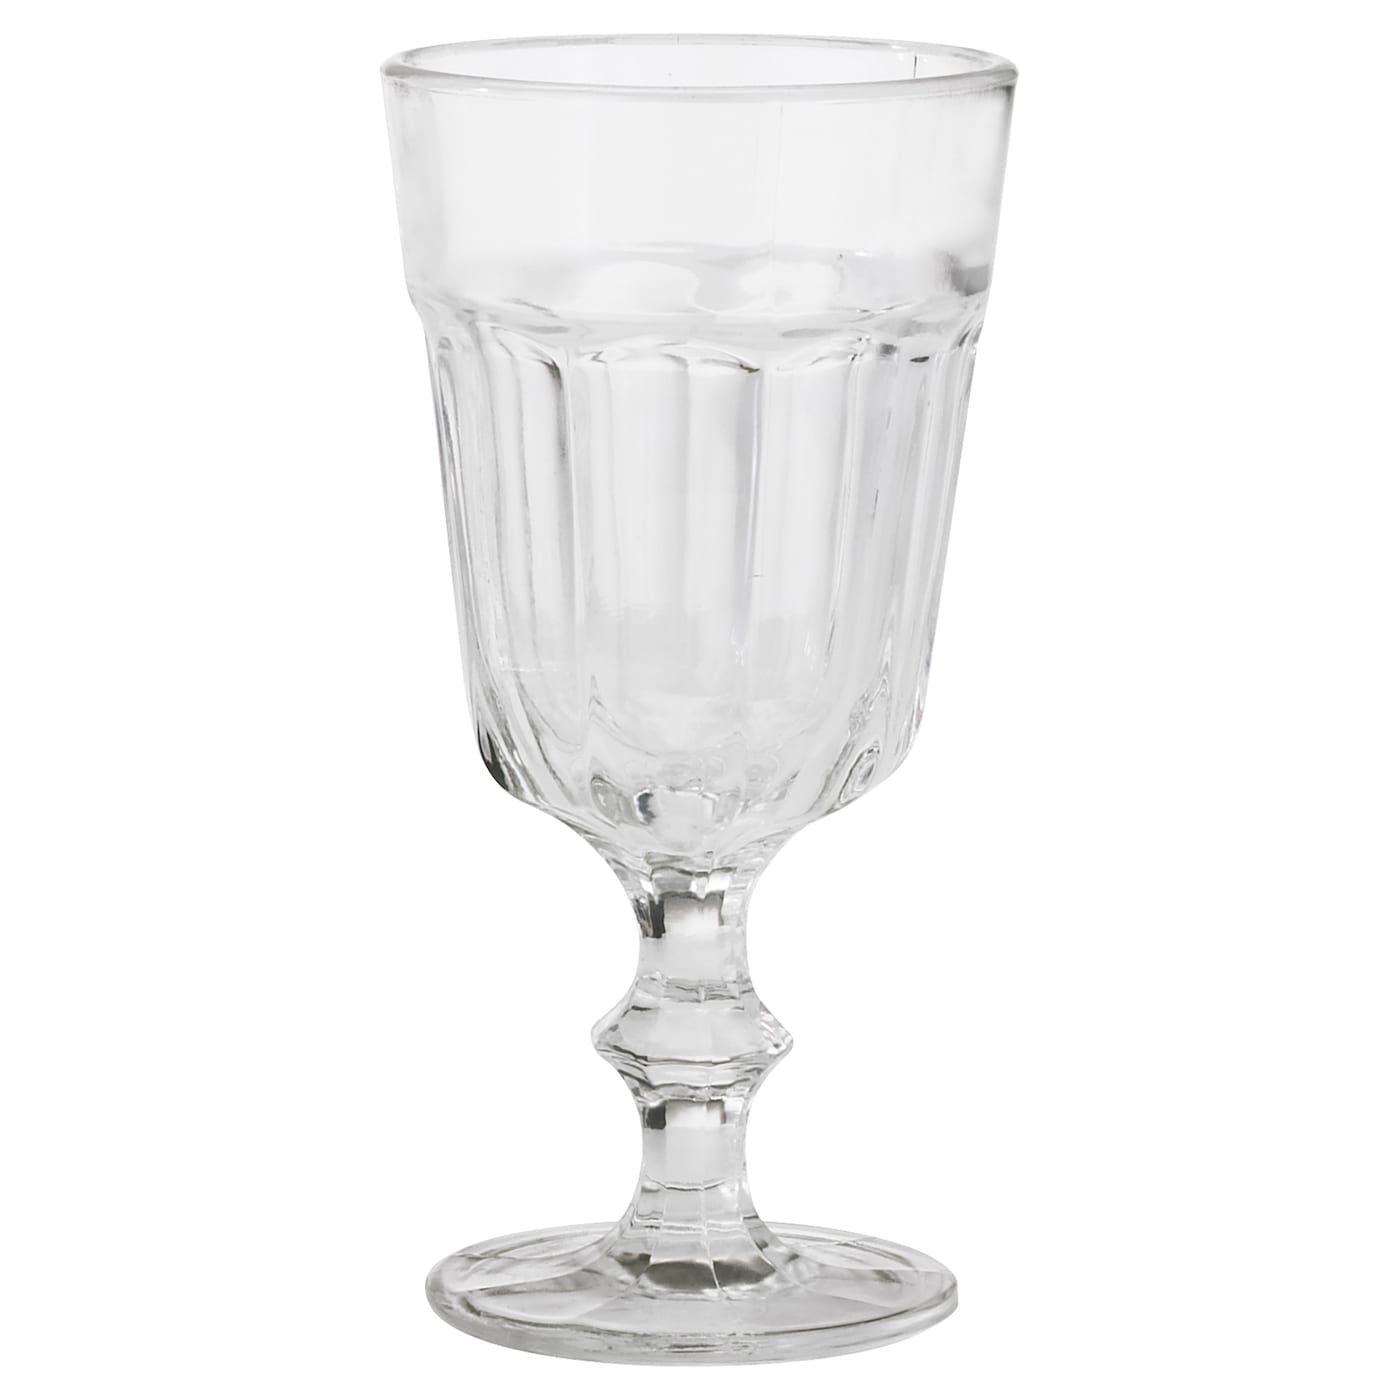 pokal verre vin verre transparent 20 cl ikea. Black Bedroom Furniture Sets. Home Design Ideas